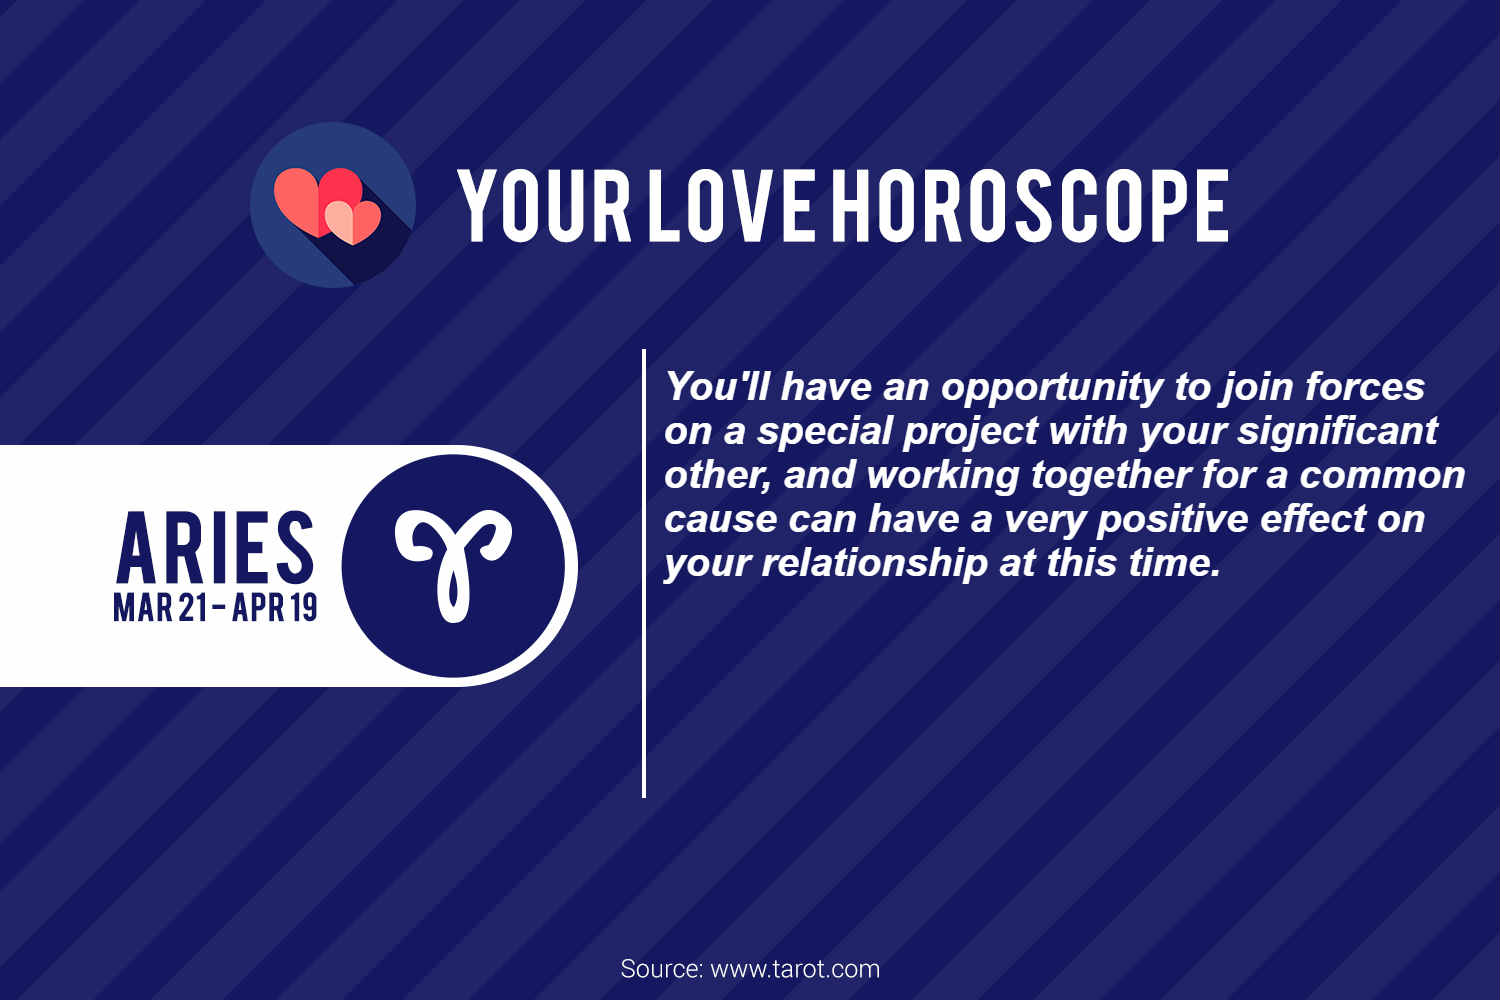 aries love horoscope february 11